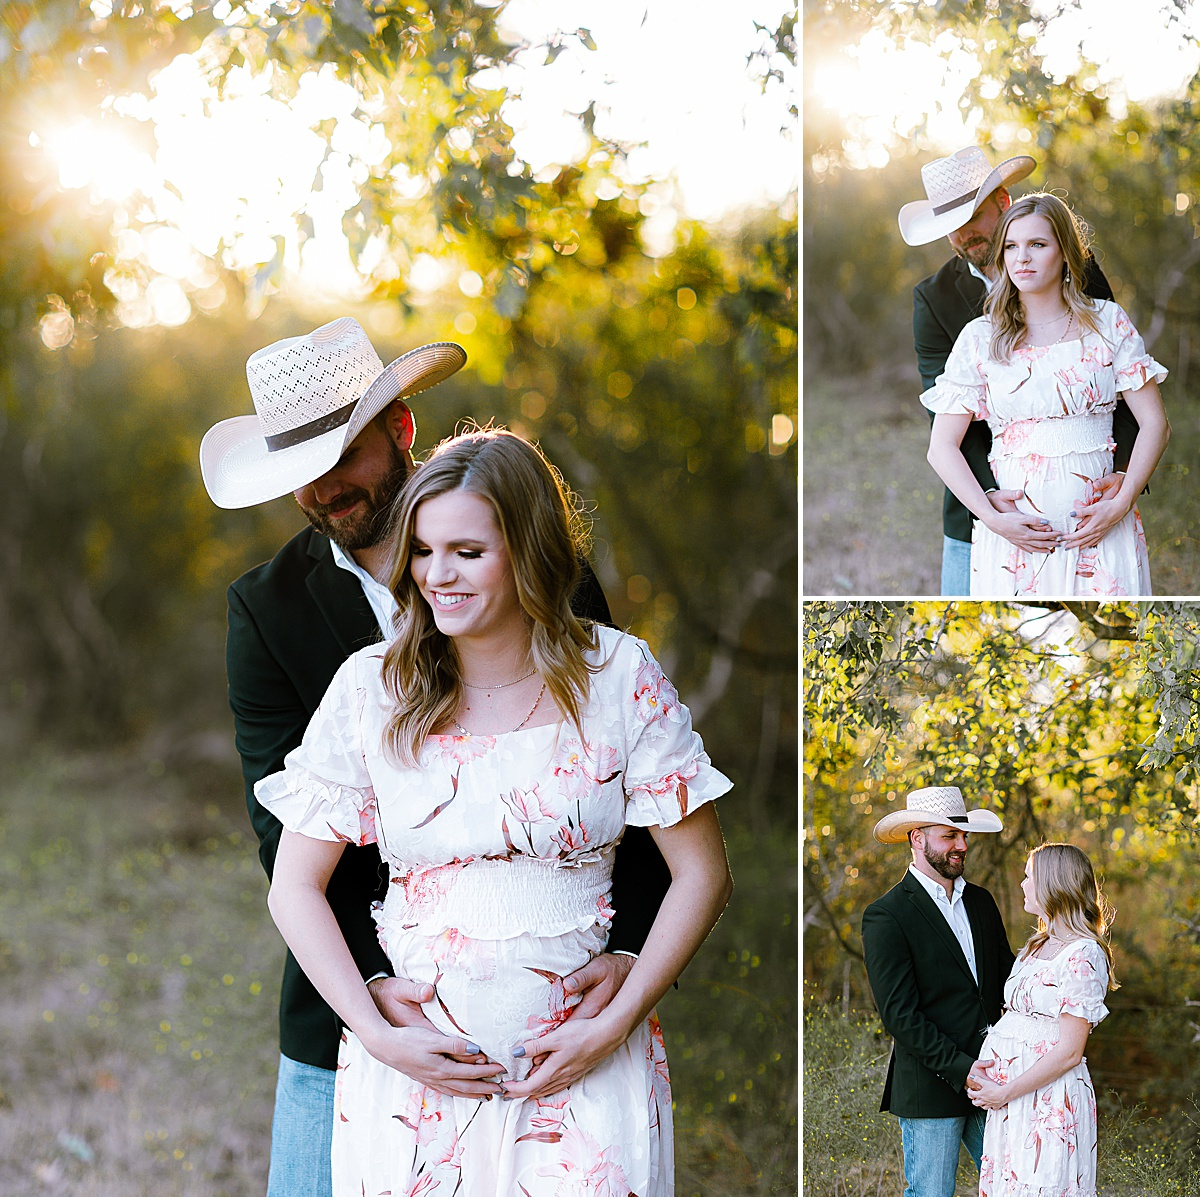 maternity-photo-session-lavernia-texas-carly-barton-photography_0034.jpg